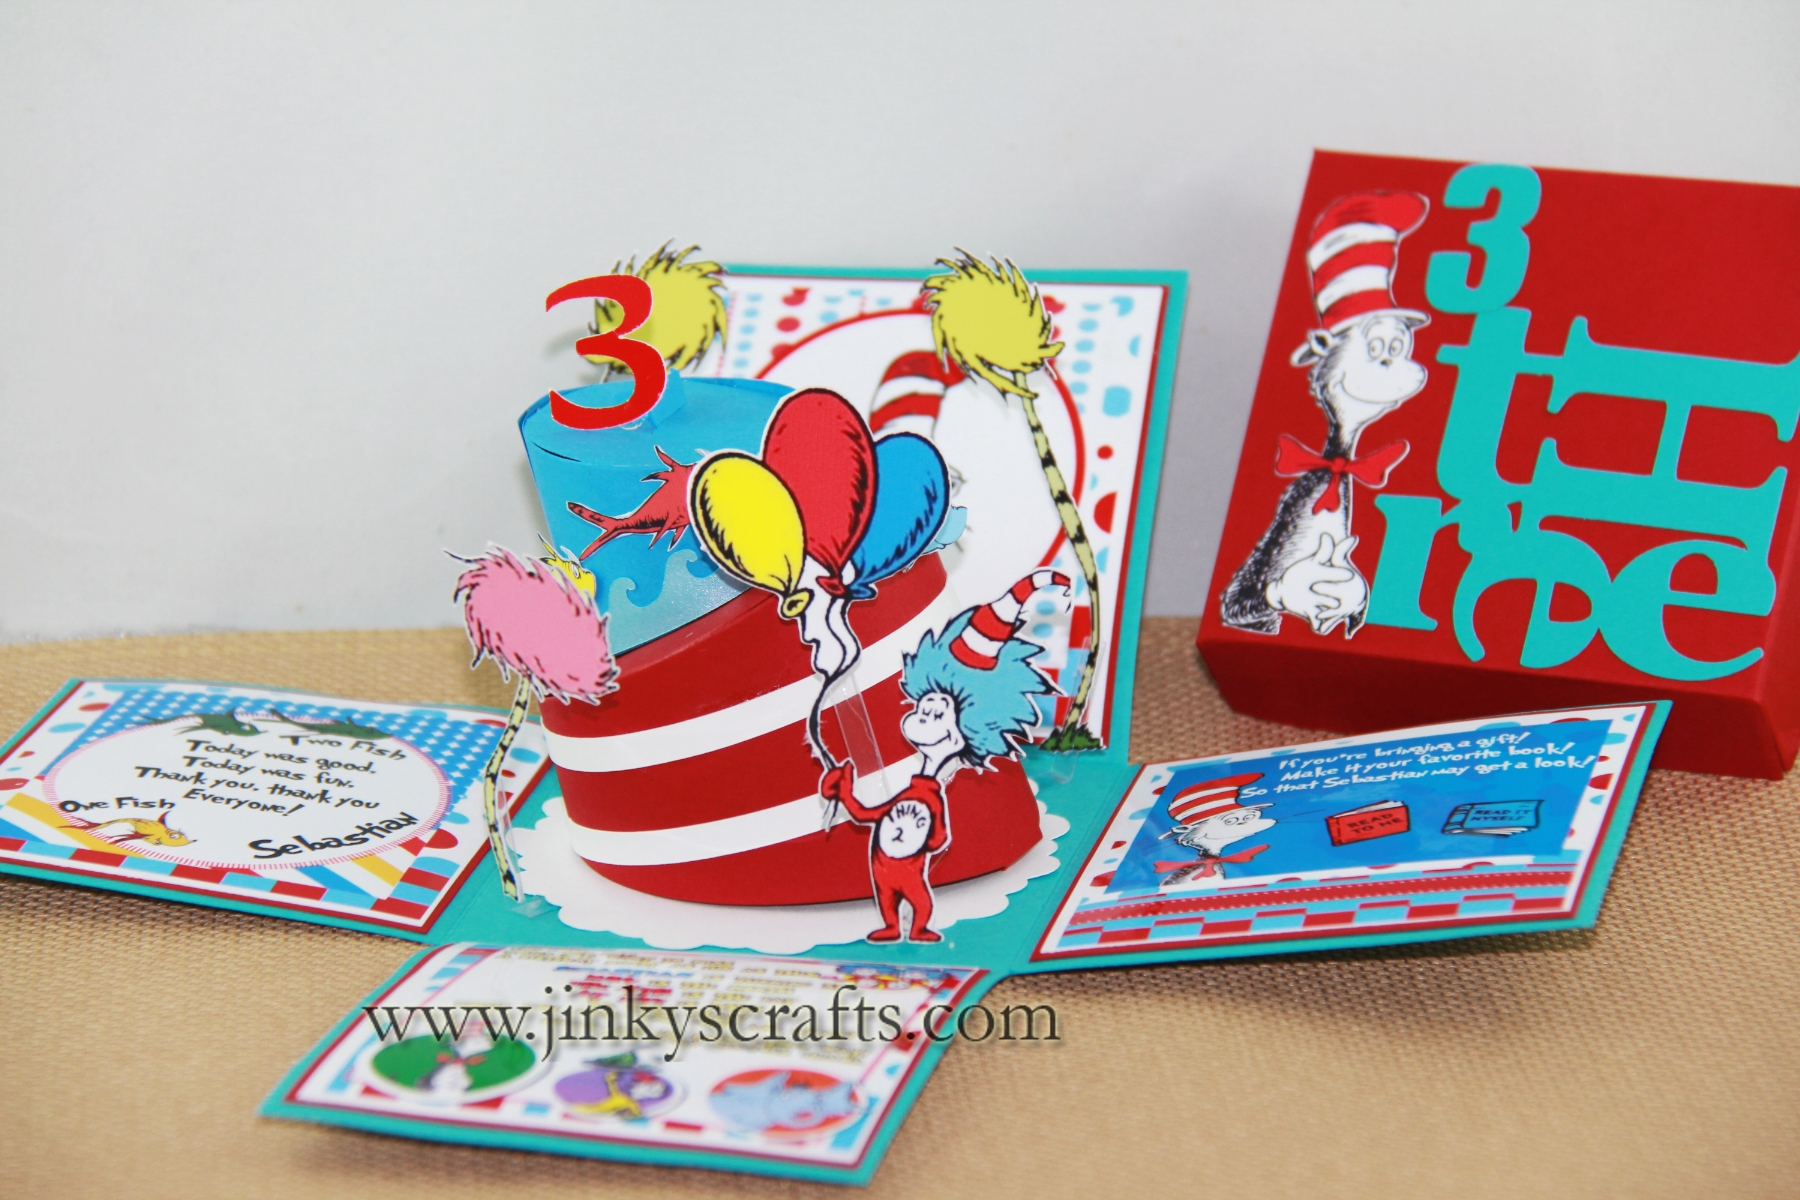 DR SEUSS BIRTHDAY BOX INVITATIONS Jinkys Crafts - Creative diy birthday invitations in a box